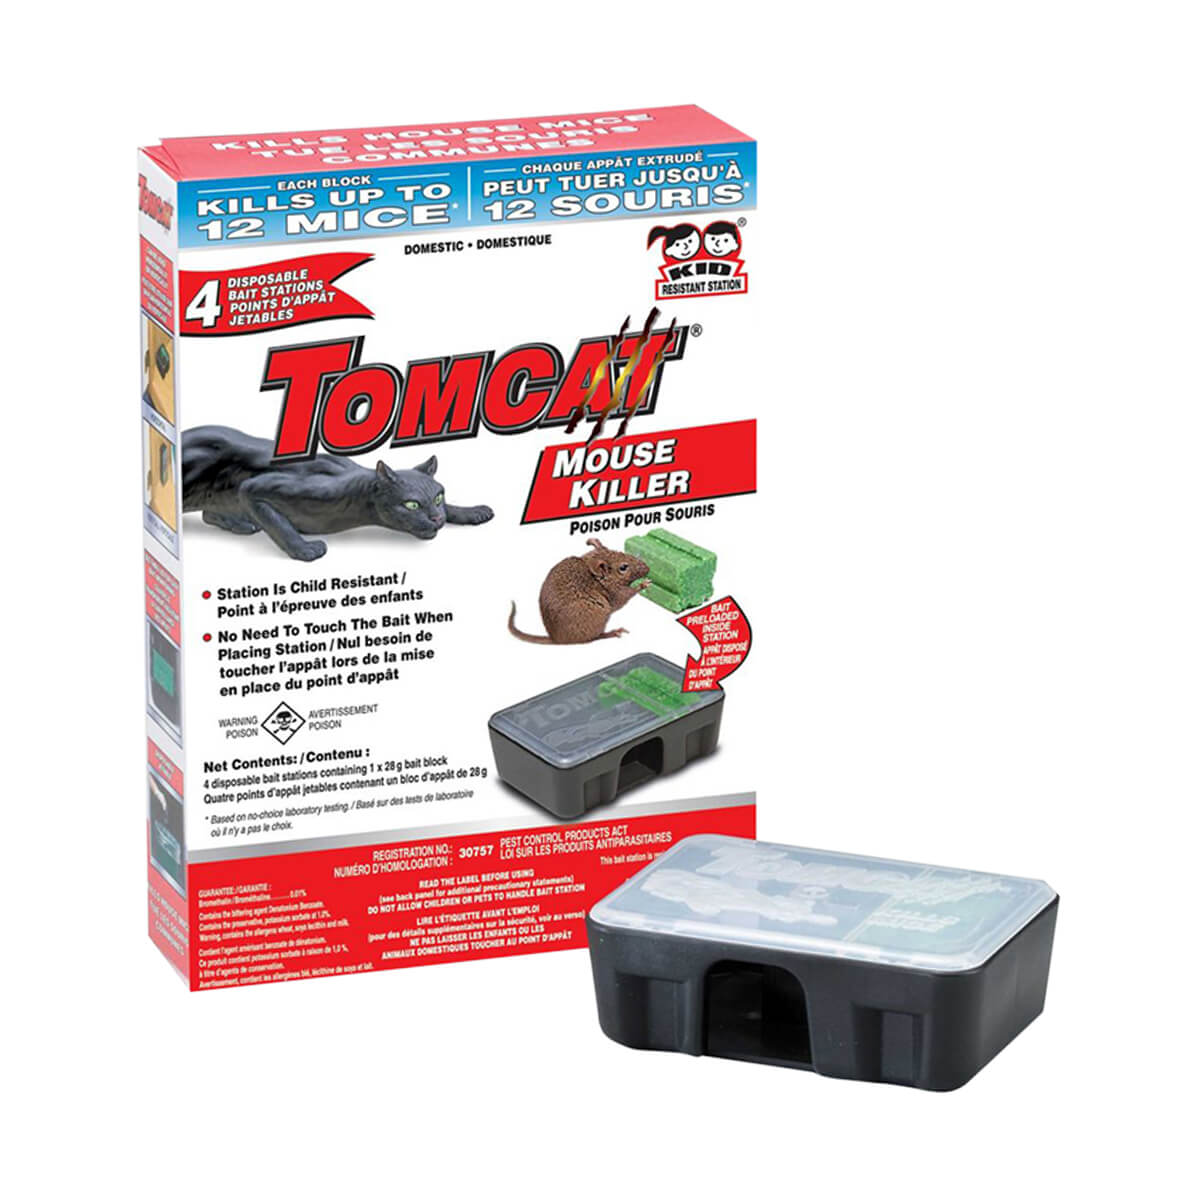 Tomcat Mouse Bait Station Domestic - 4pack